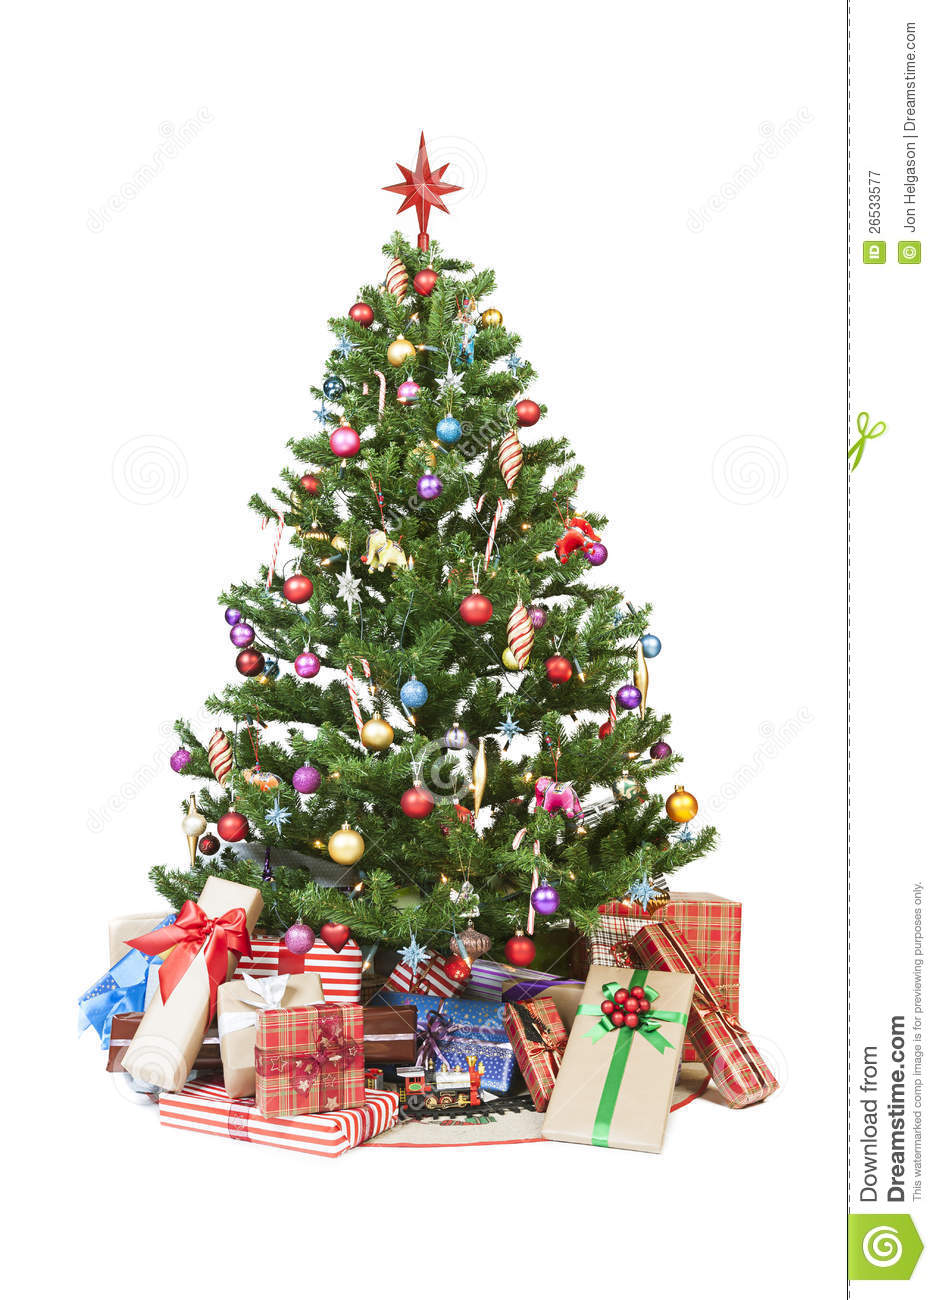 Christmas Tree With Presents Royalty Free Stock ...